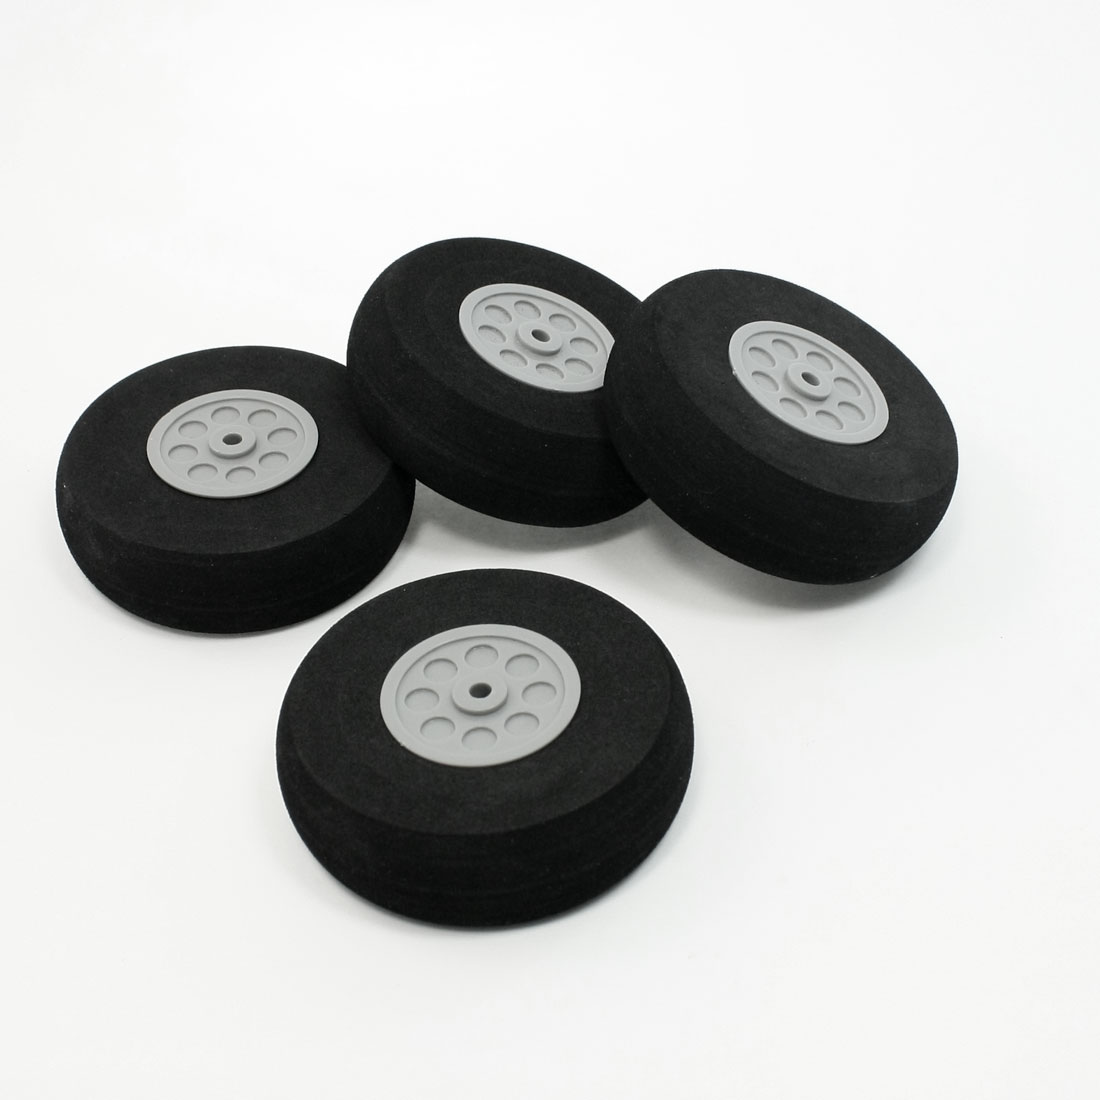 RC Model Plane Aircraft 75mm Dia Foam Wheel Replacement Black Gray 4 Pieces